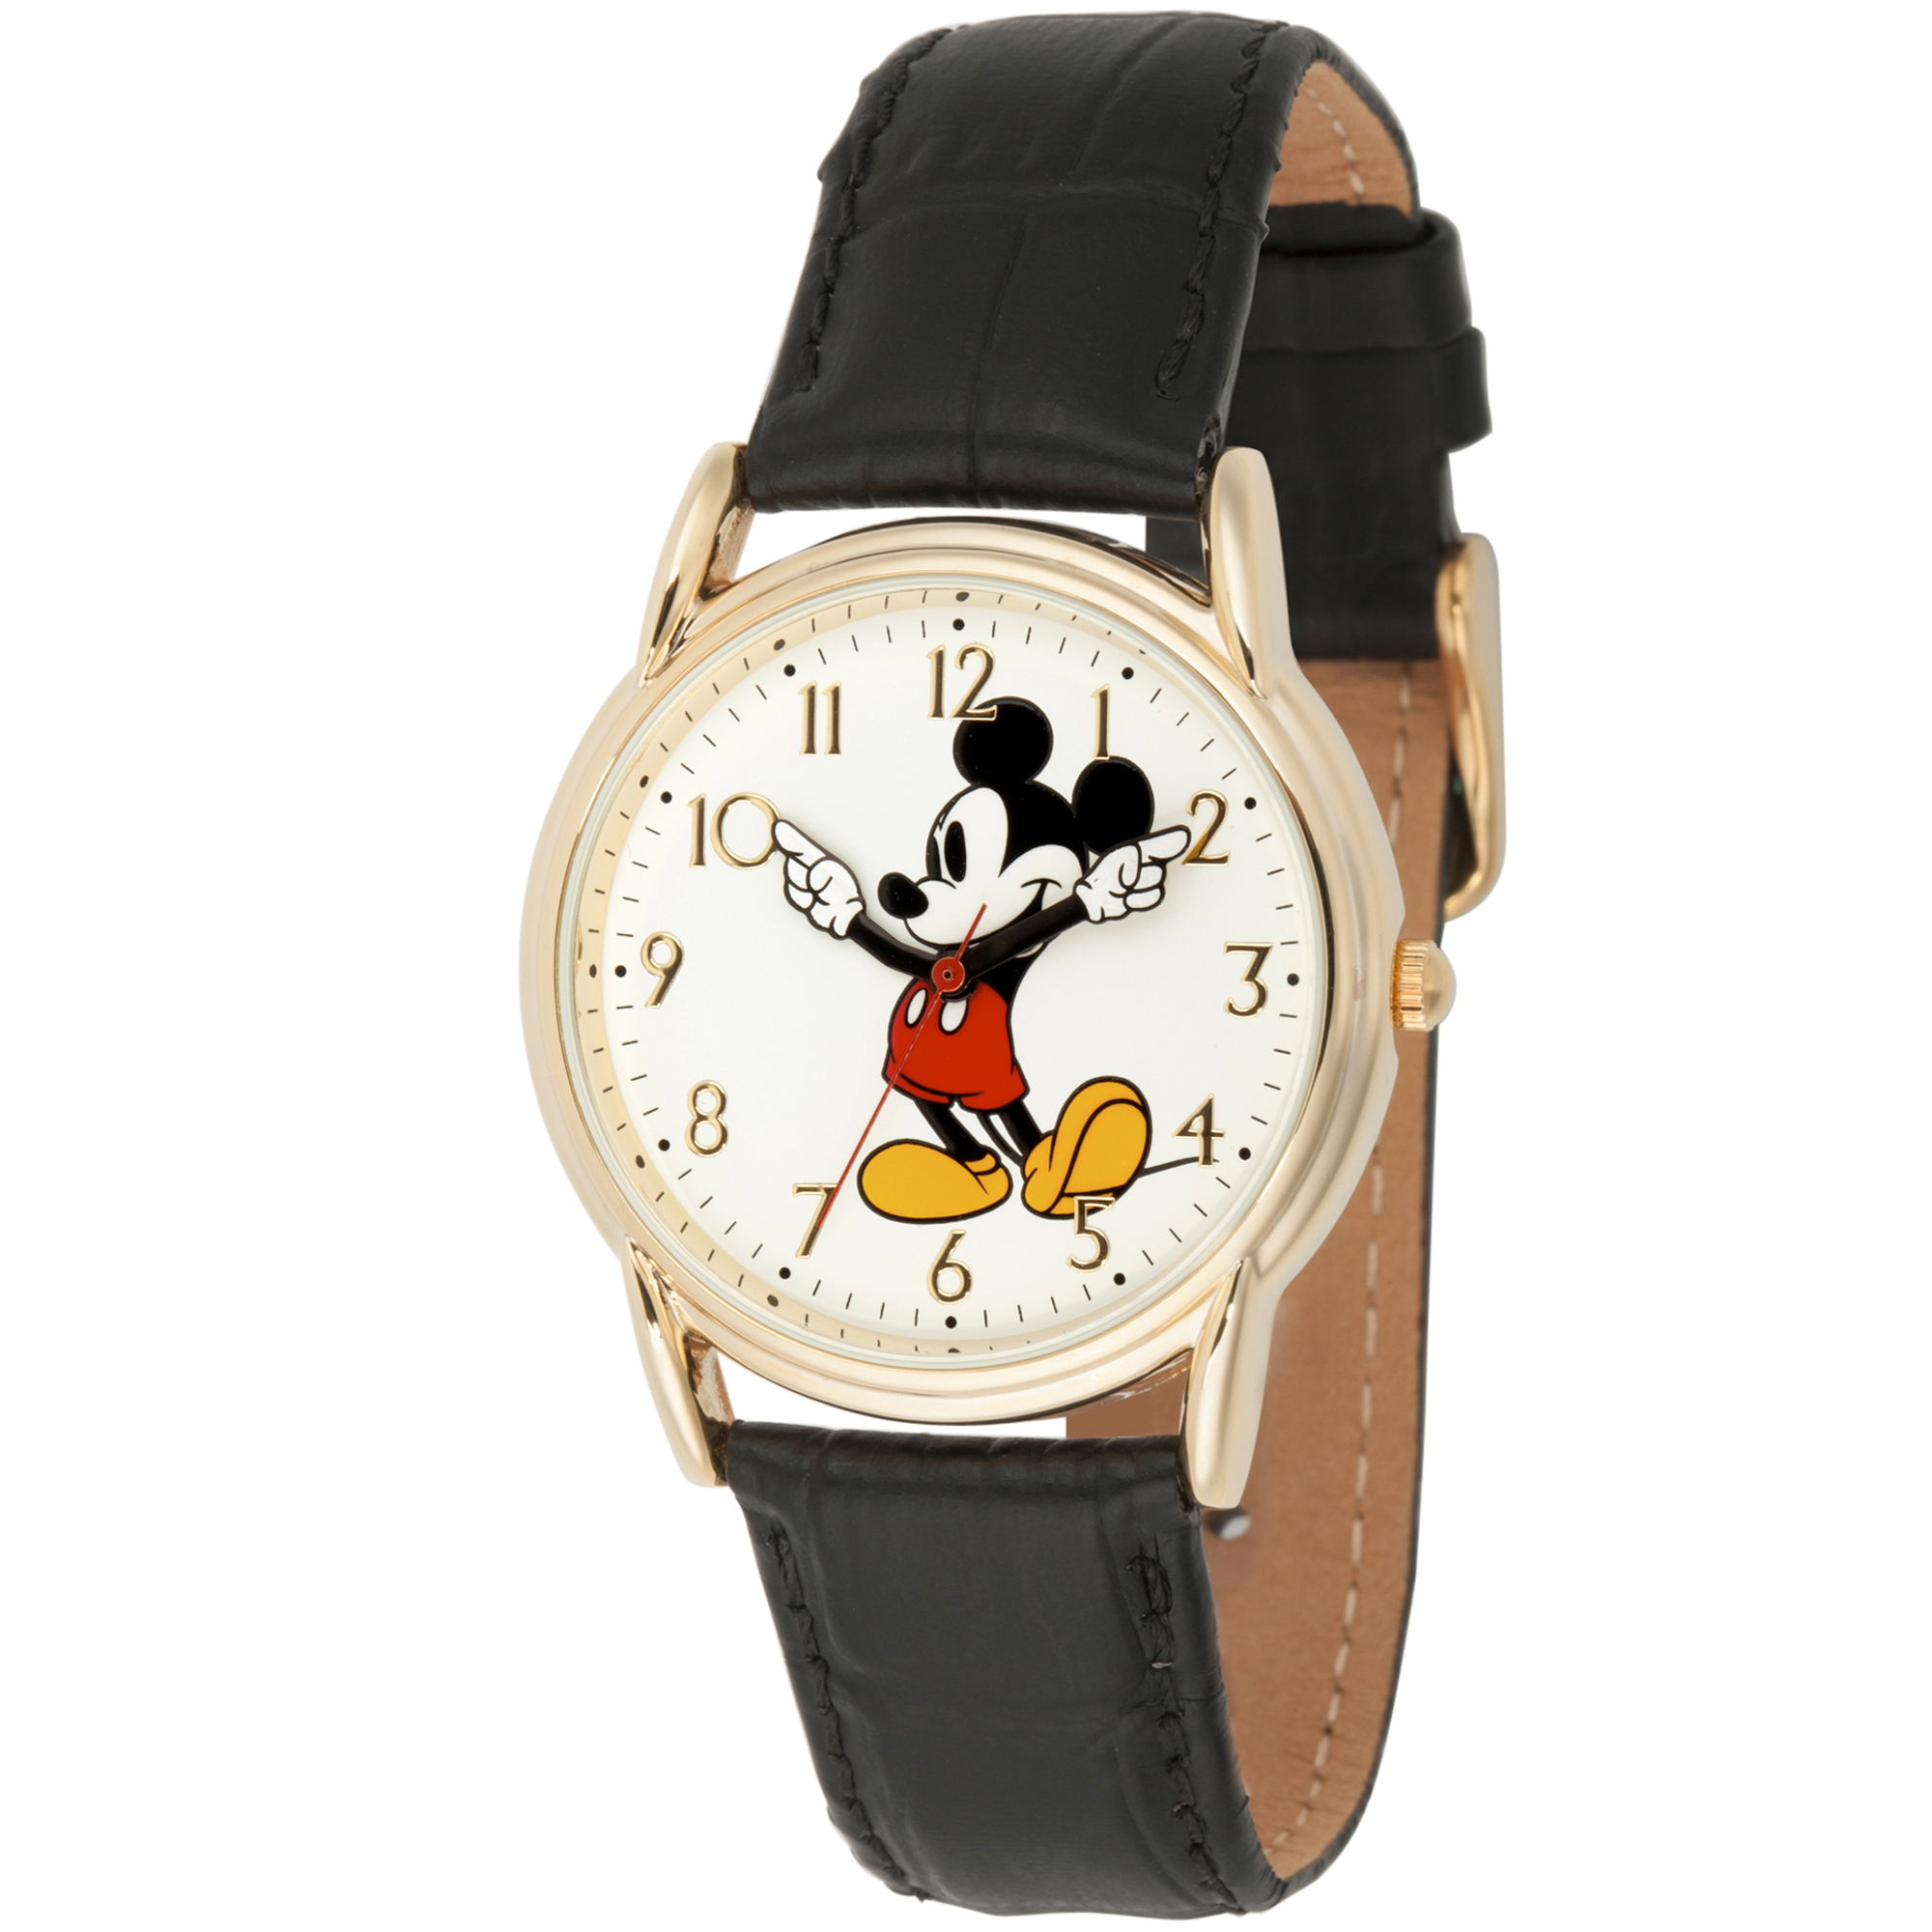 Mickey Mouse Men's Gold Cardiff Alloy Watch, Black Leather Strap